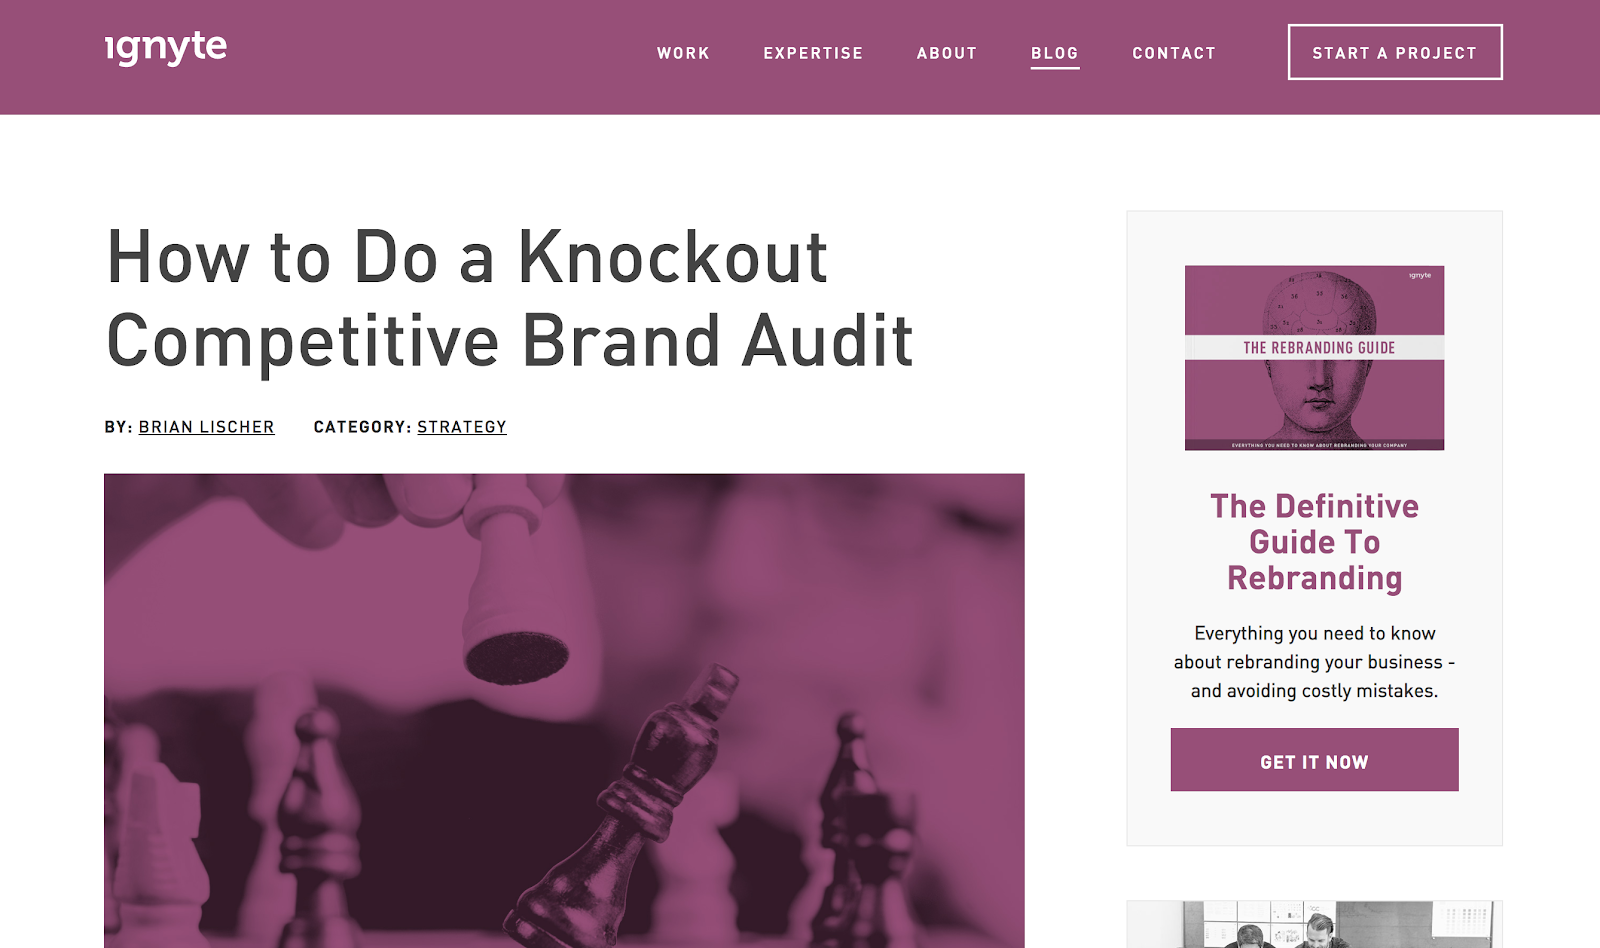 Example of Branding with Colors on Your Blog (Ignyte Screenshot)